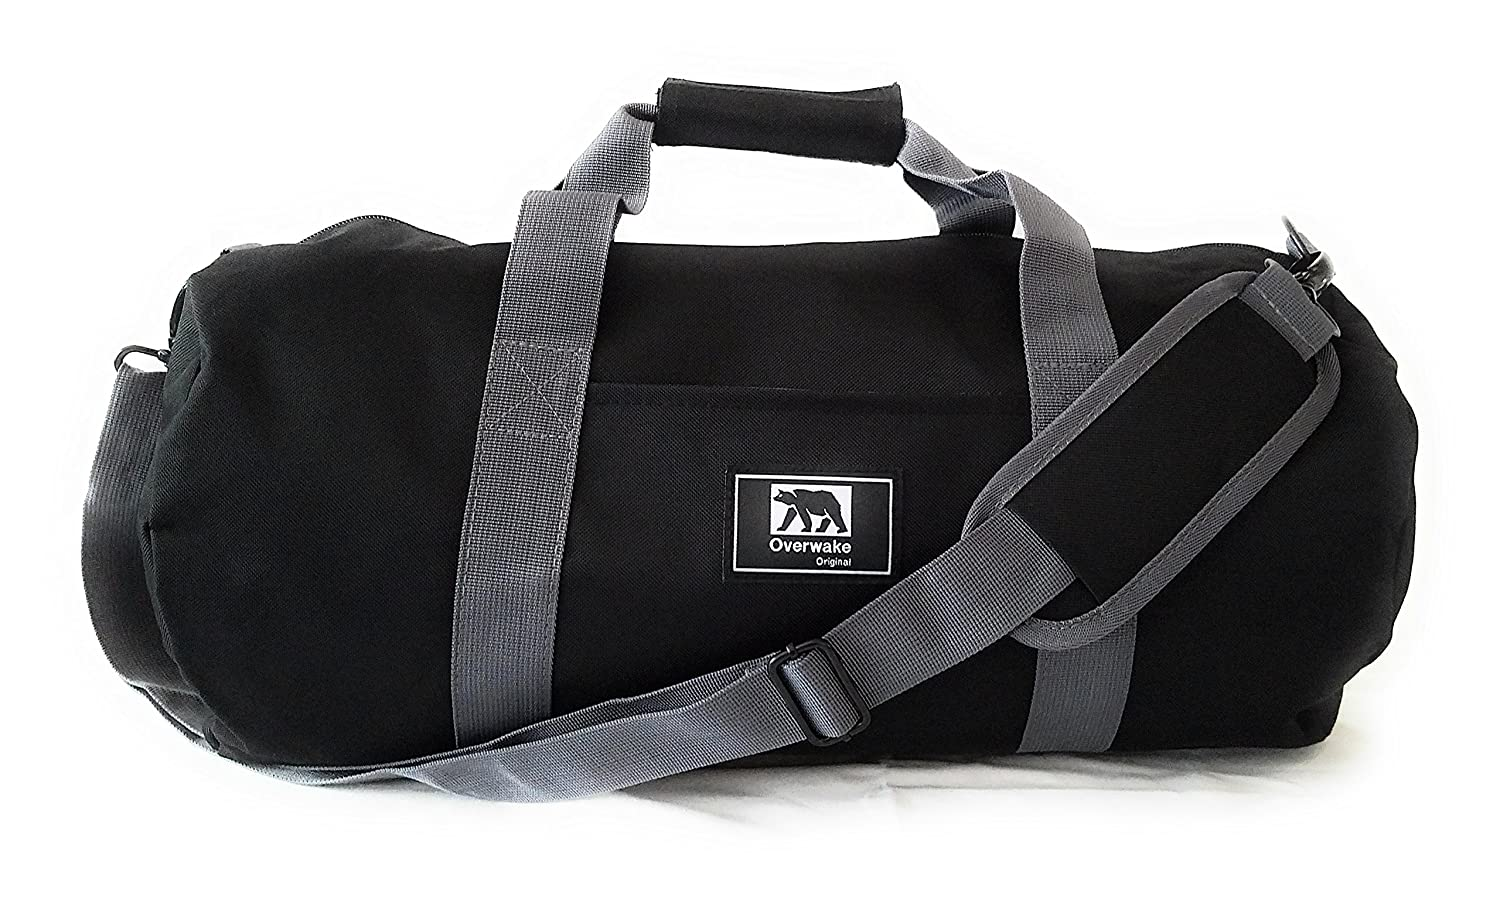 Small Gym Bag for Men and Women Sports Travel Duffle Overwake Original Black 19 inch Updated 2019 Model